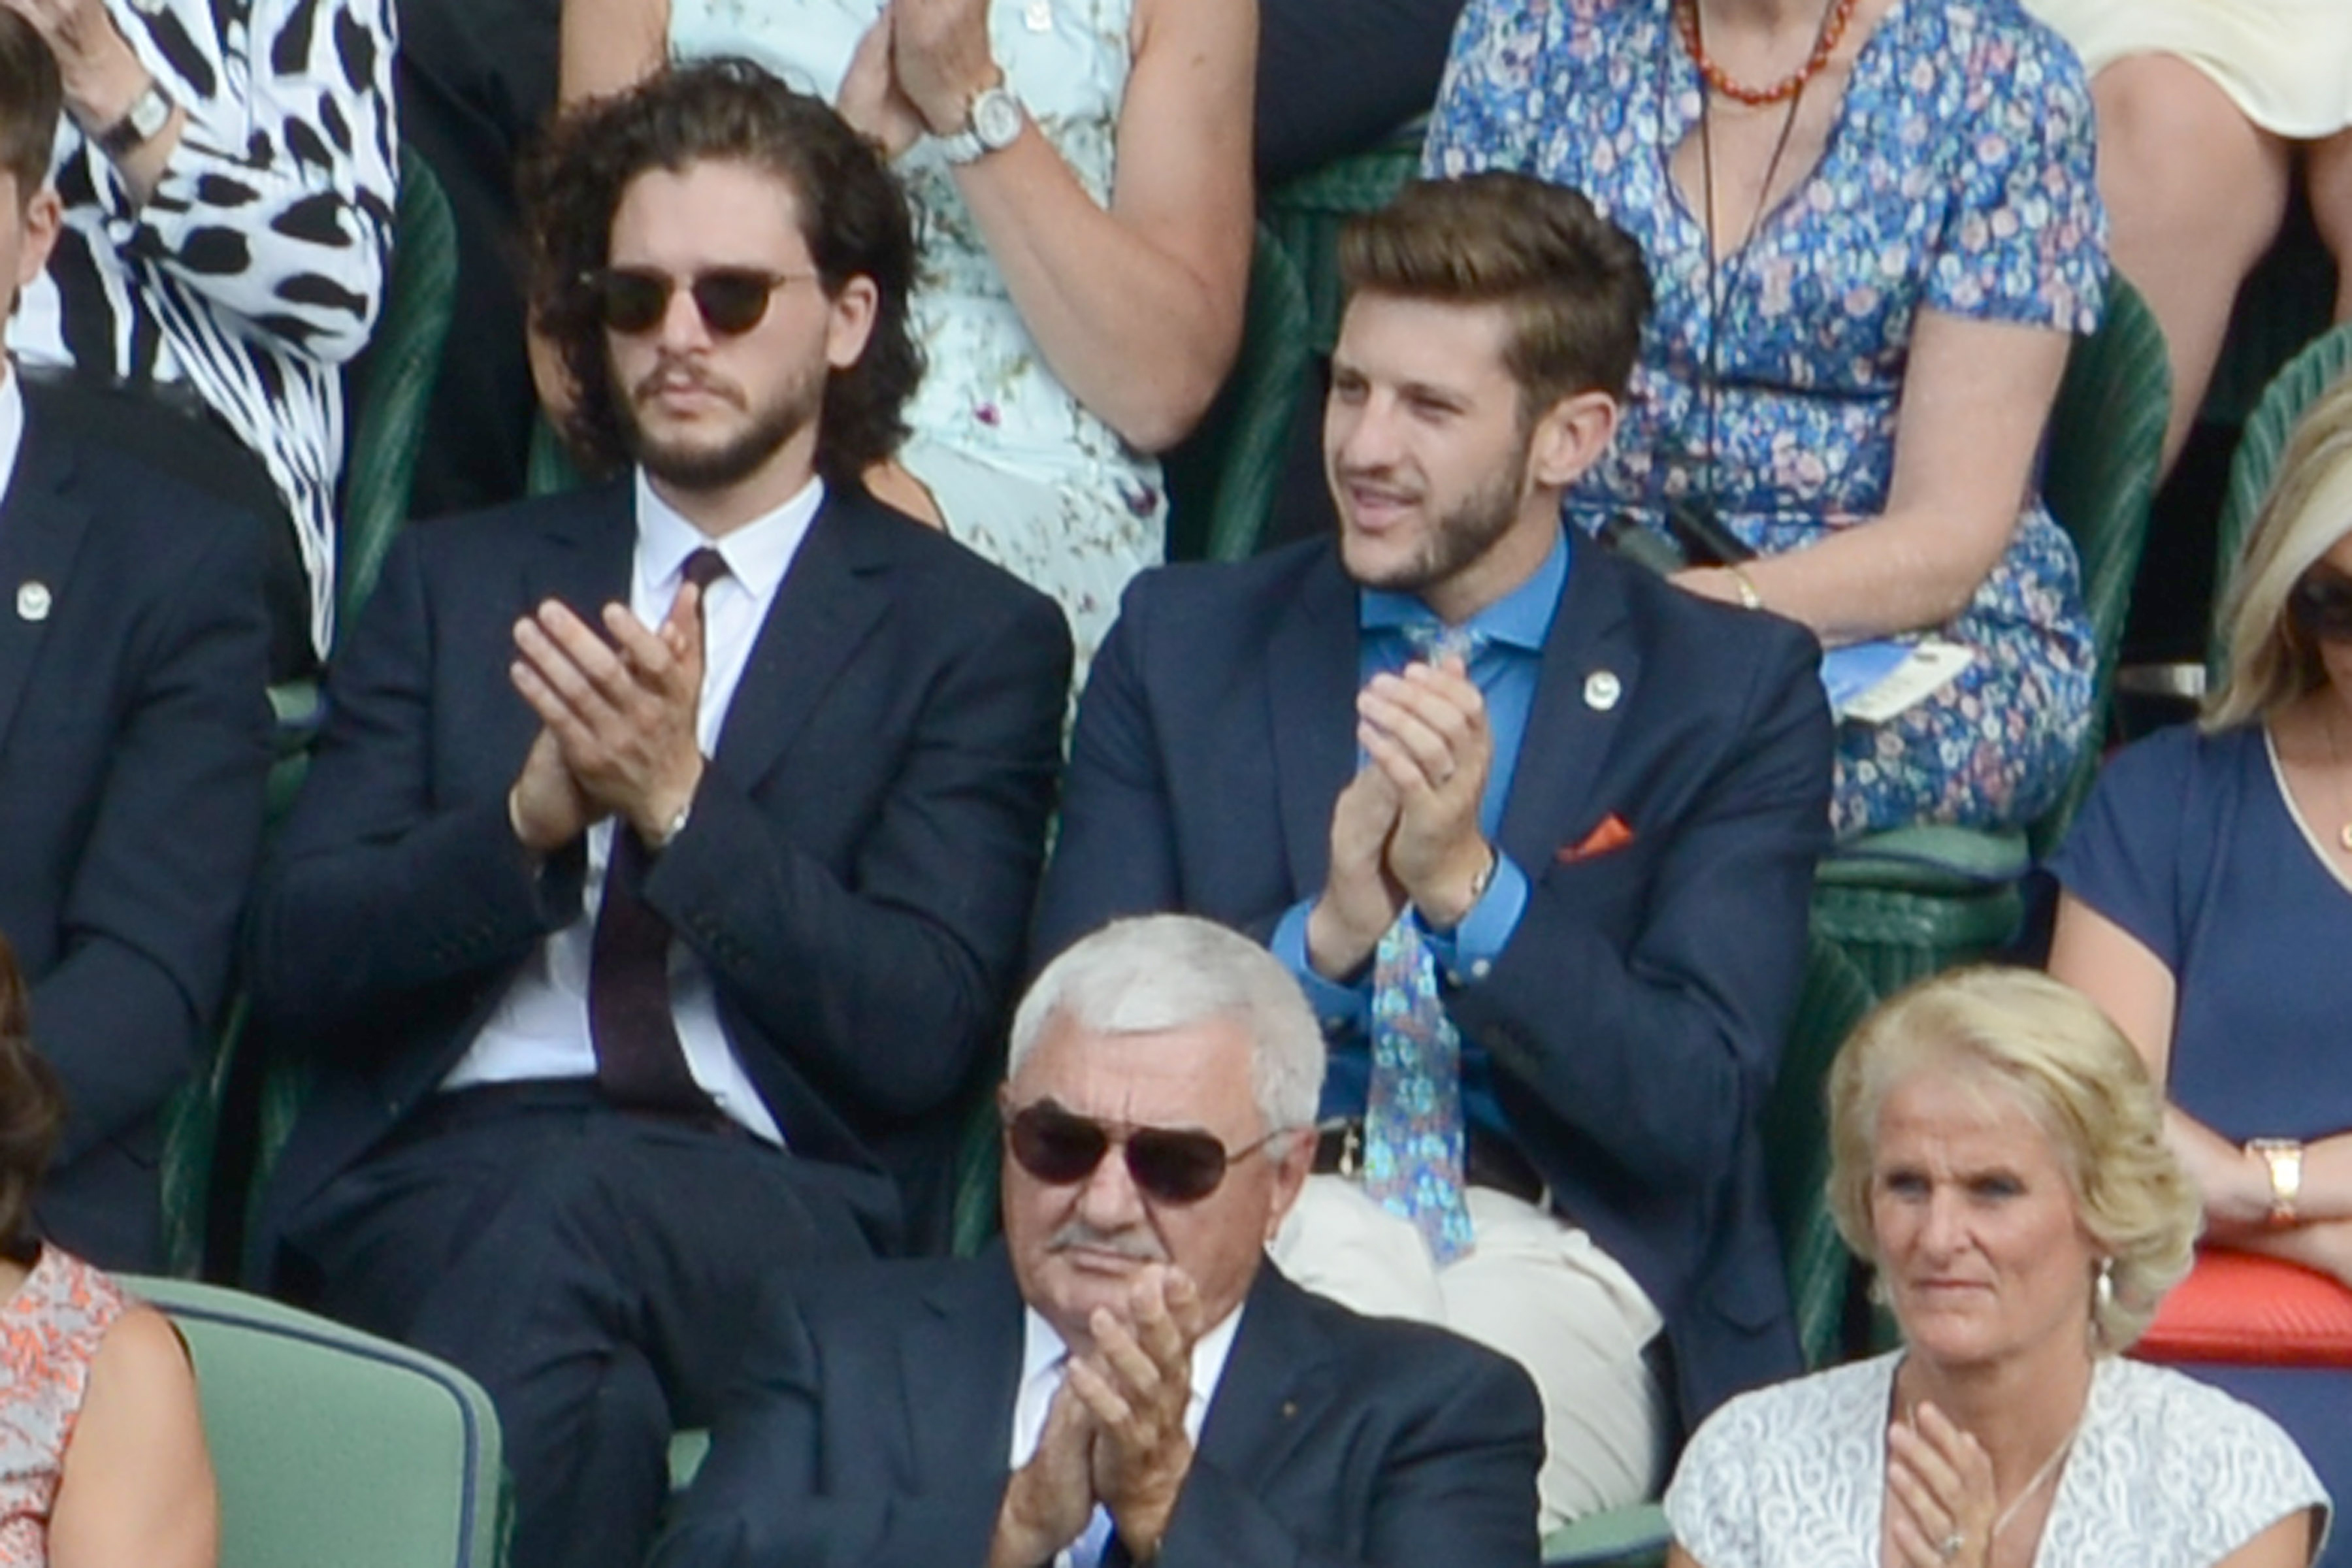 Kit Harrington attends Wimbledon in London on July 2, 2015.